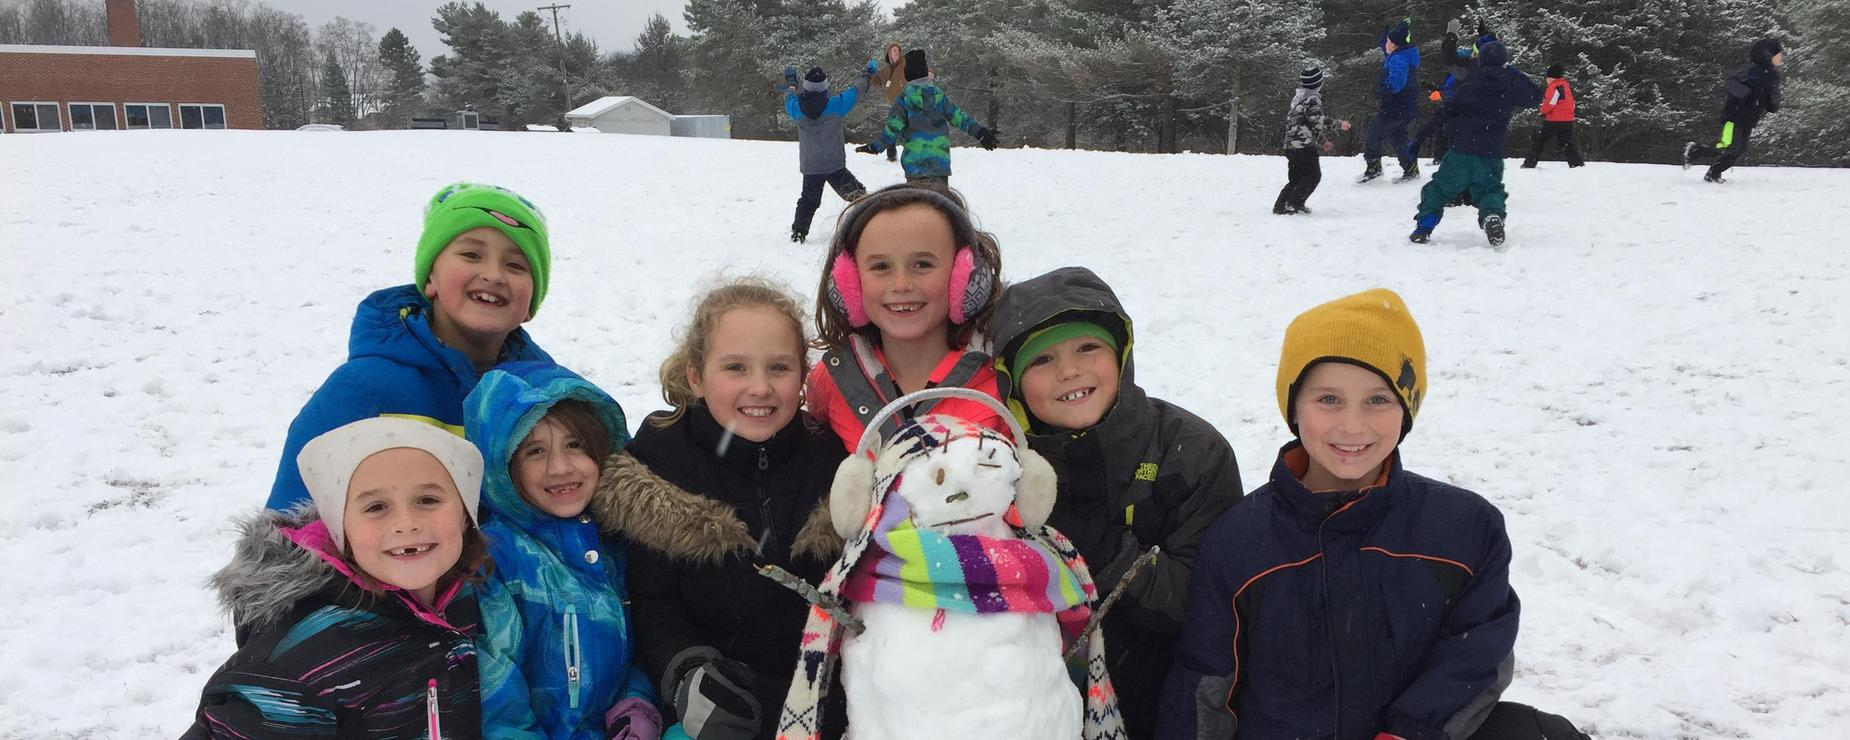 A group of students surround their snowman creation